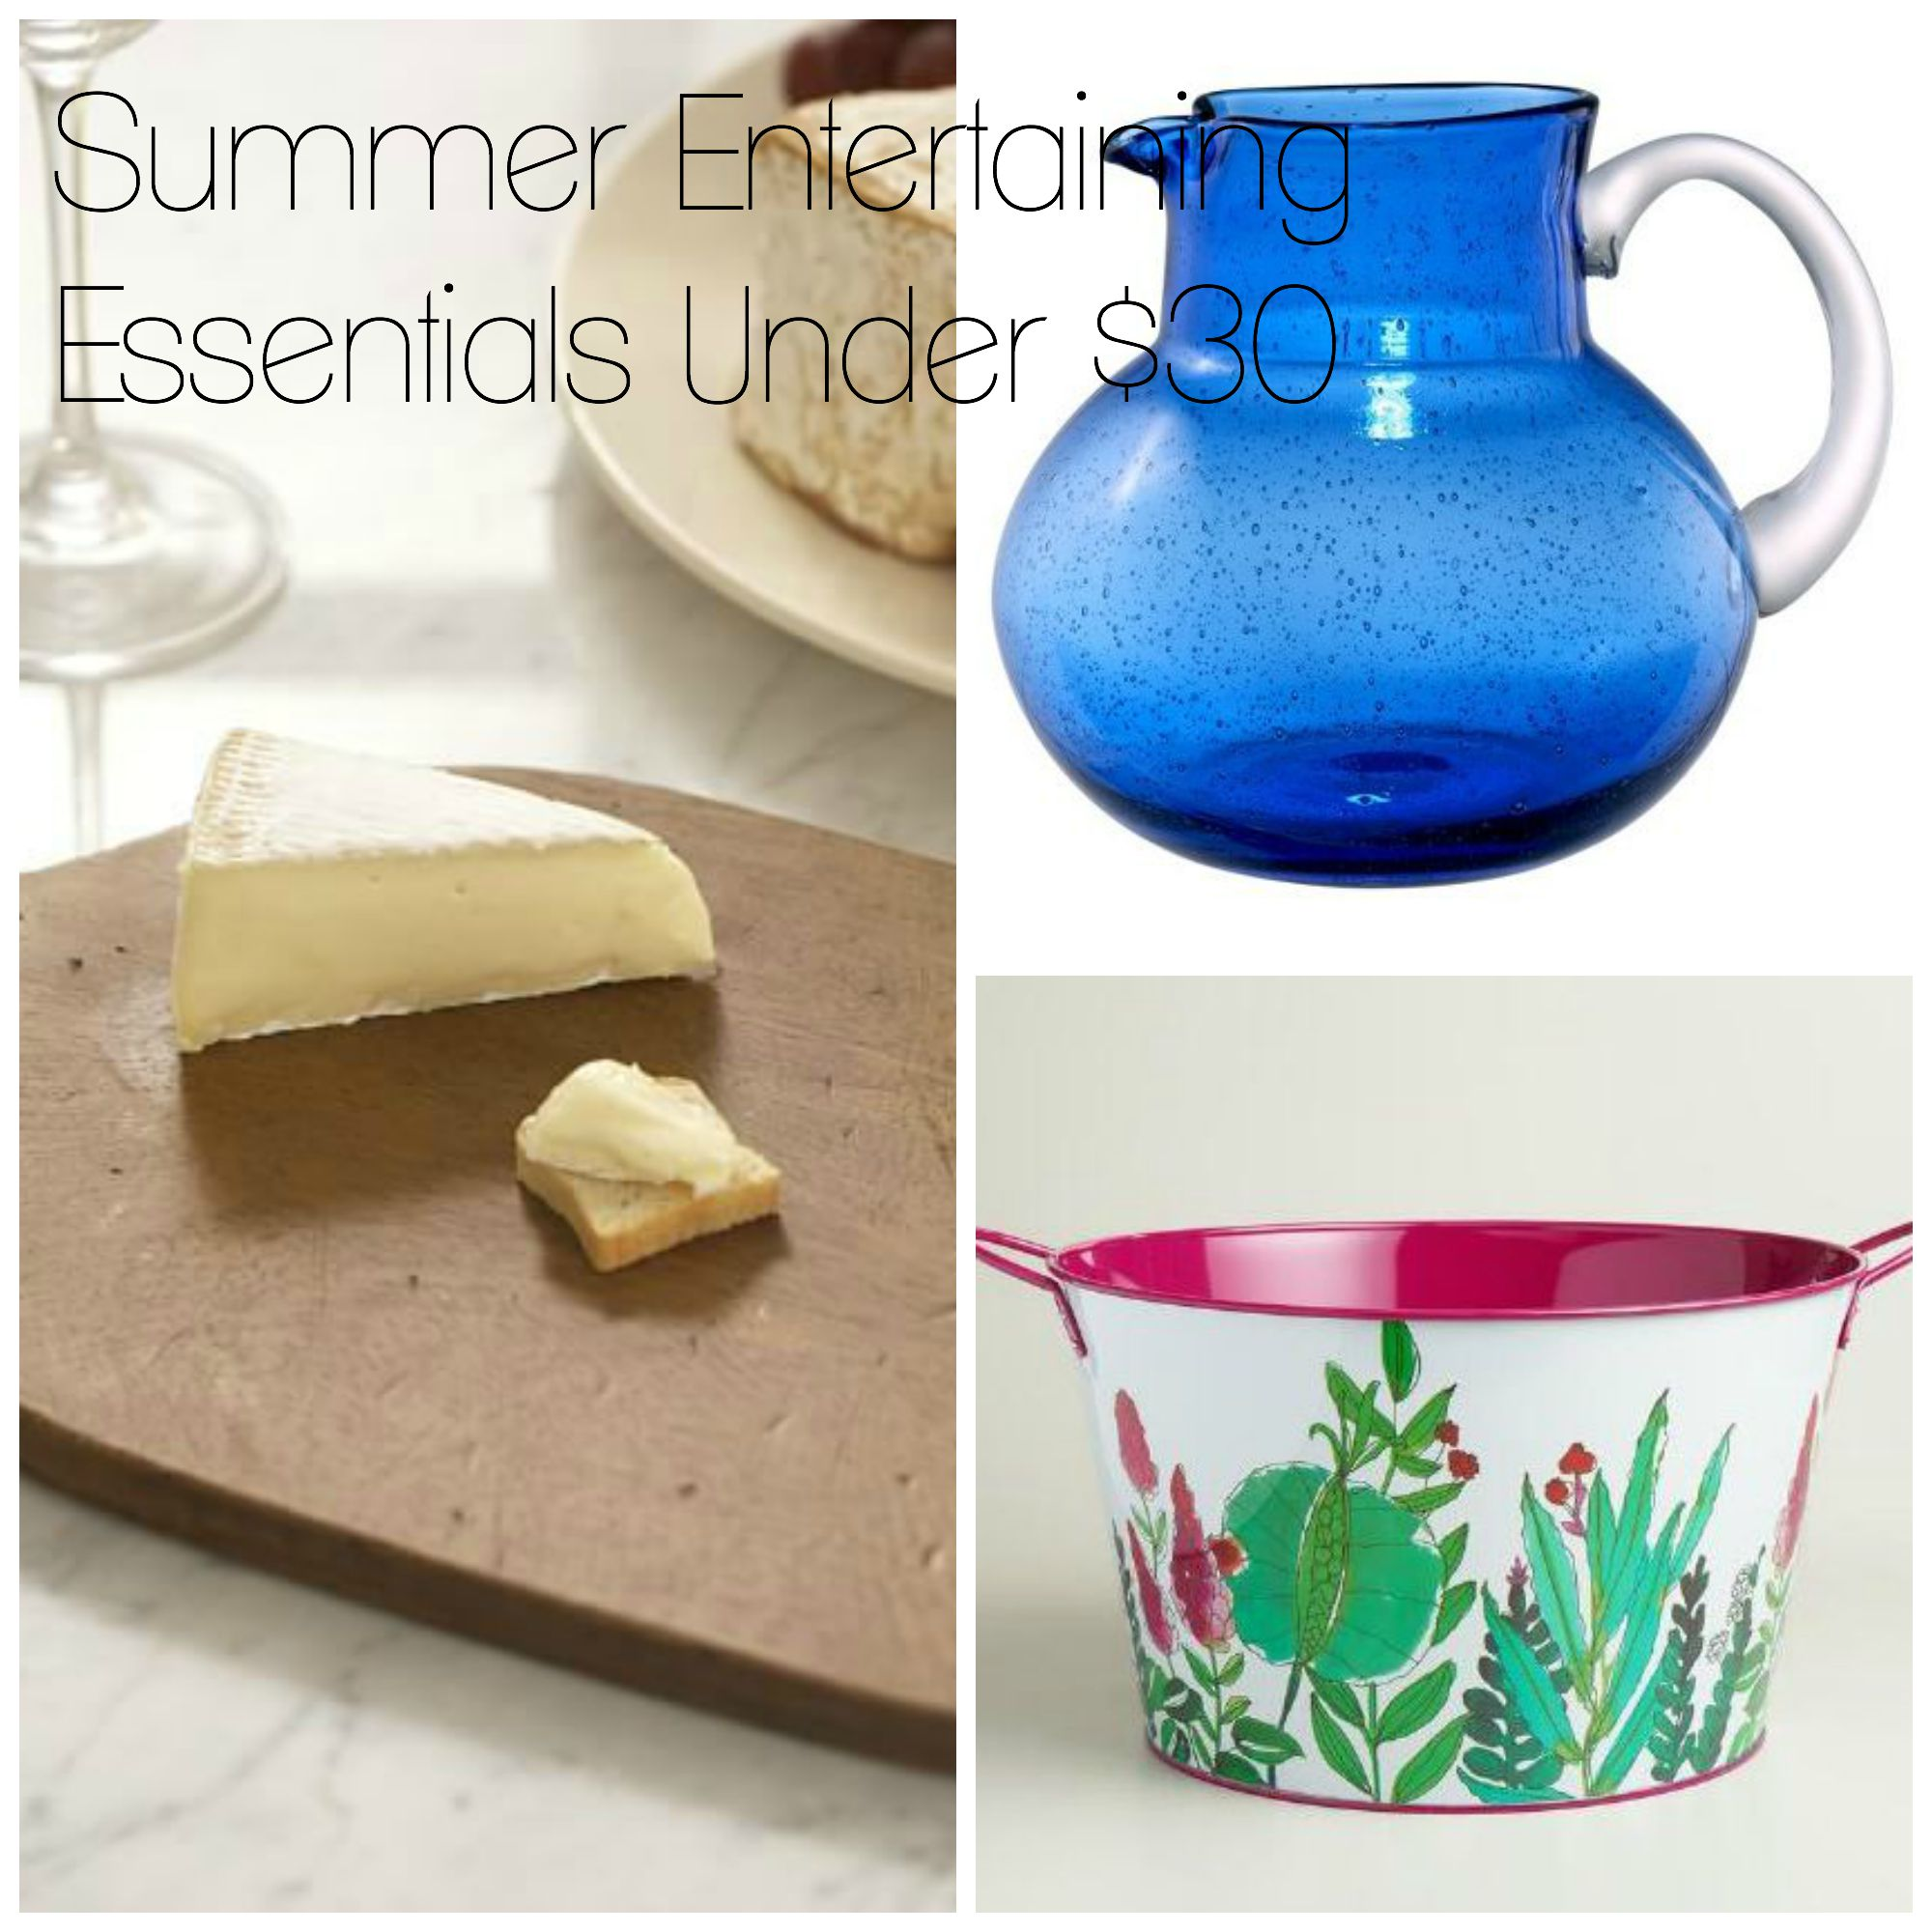 Summer entertaining essentials under $30